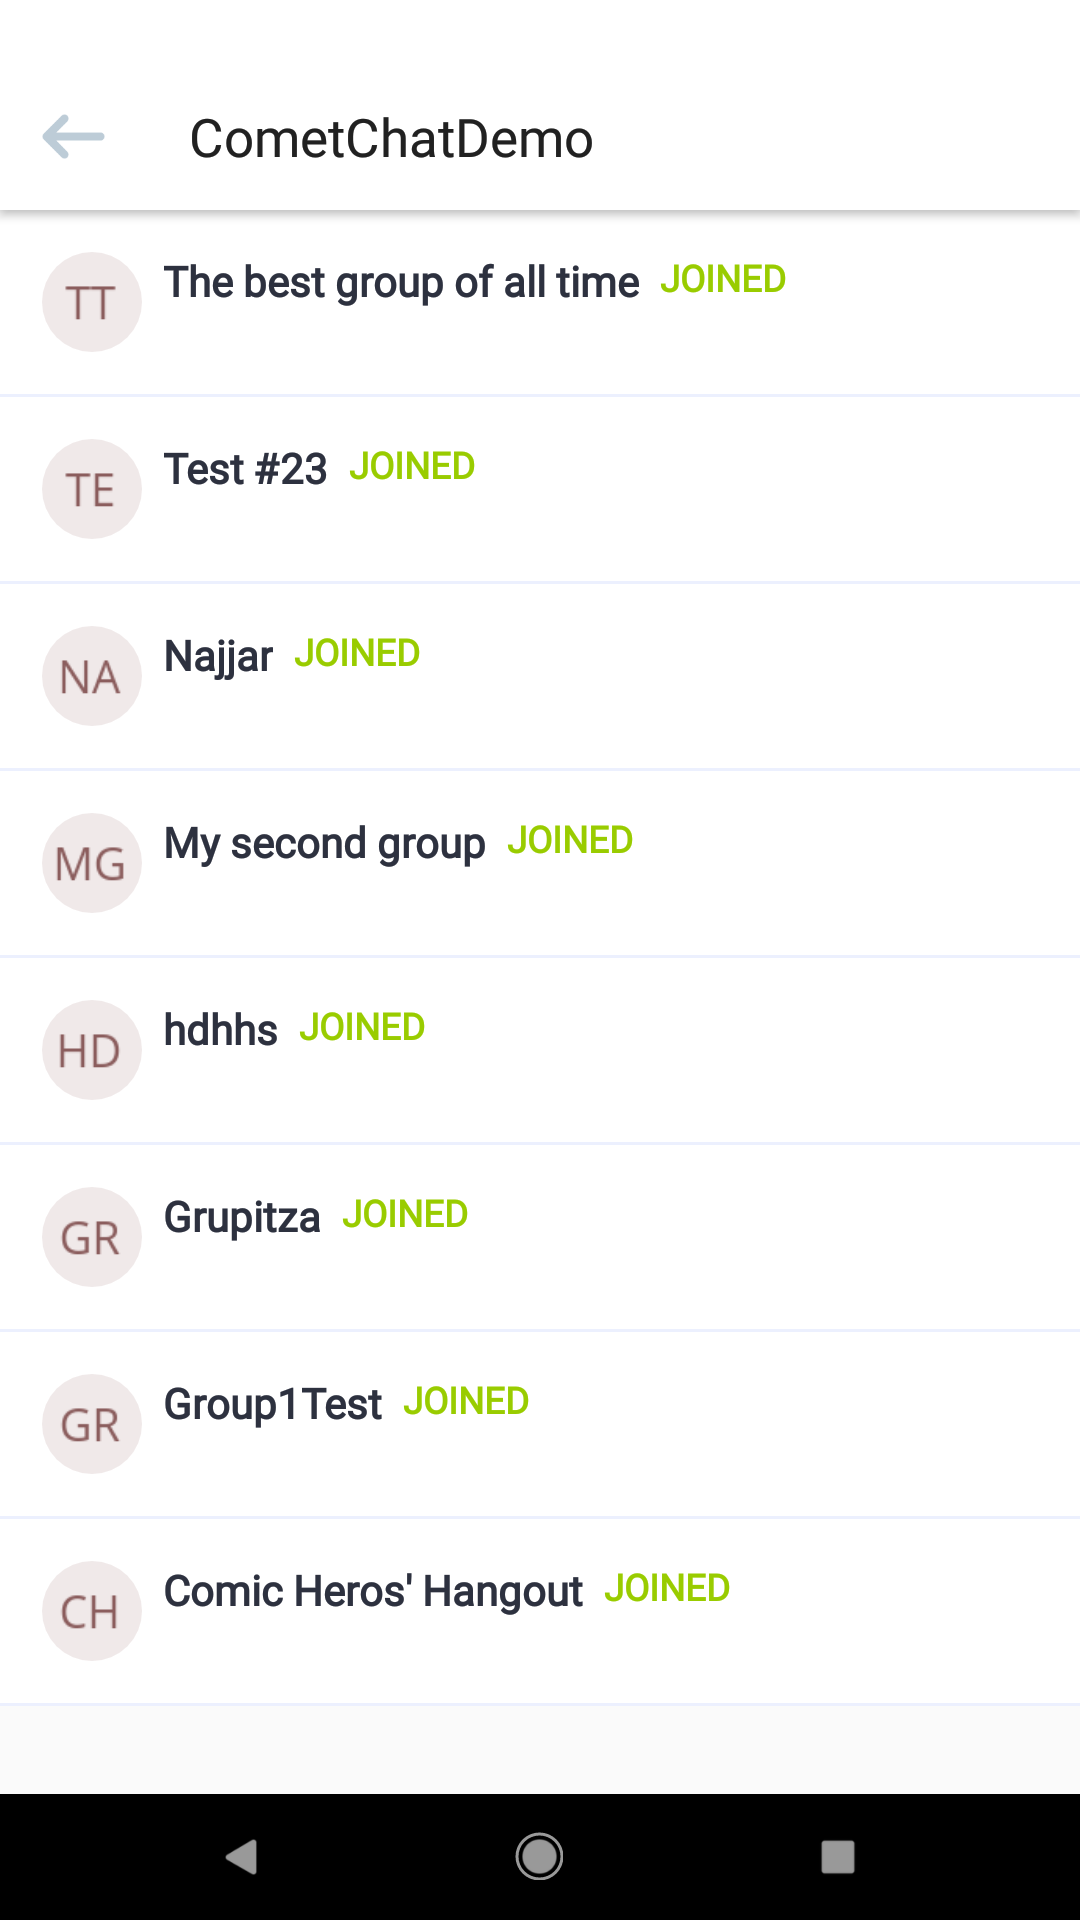 List of all groups